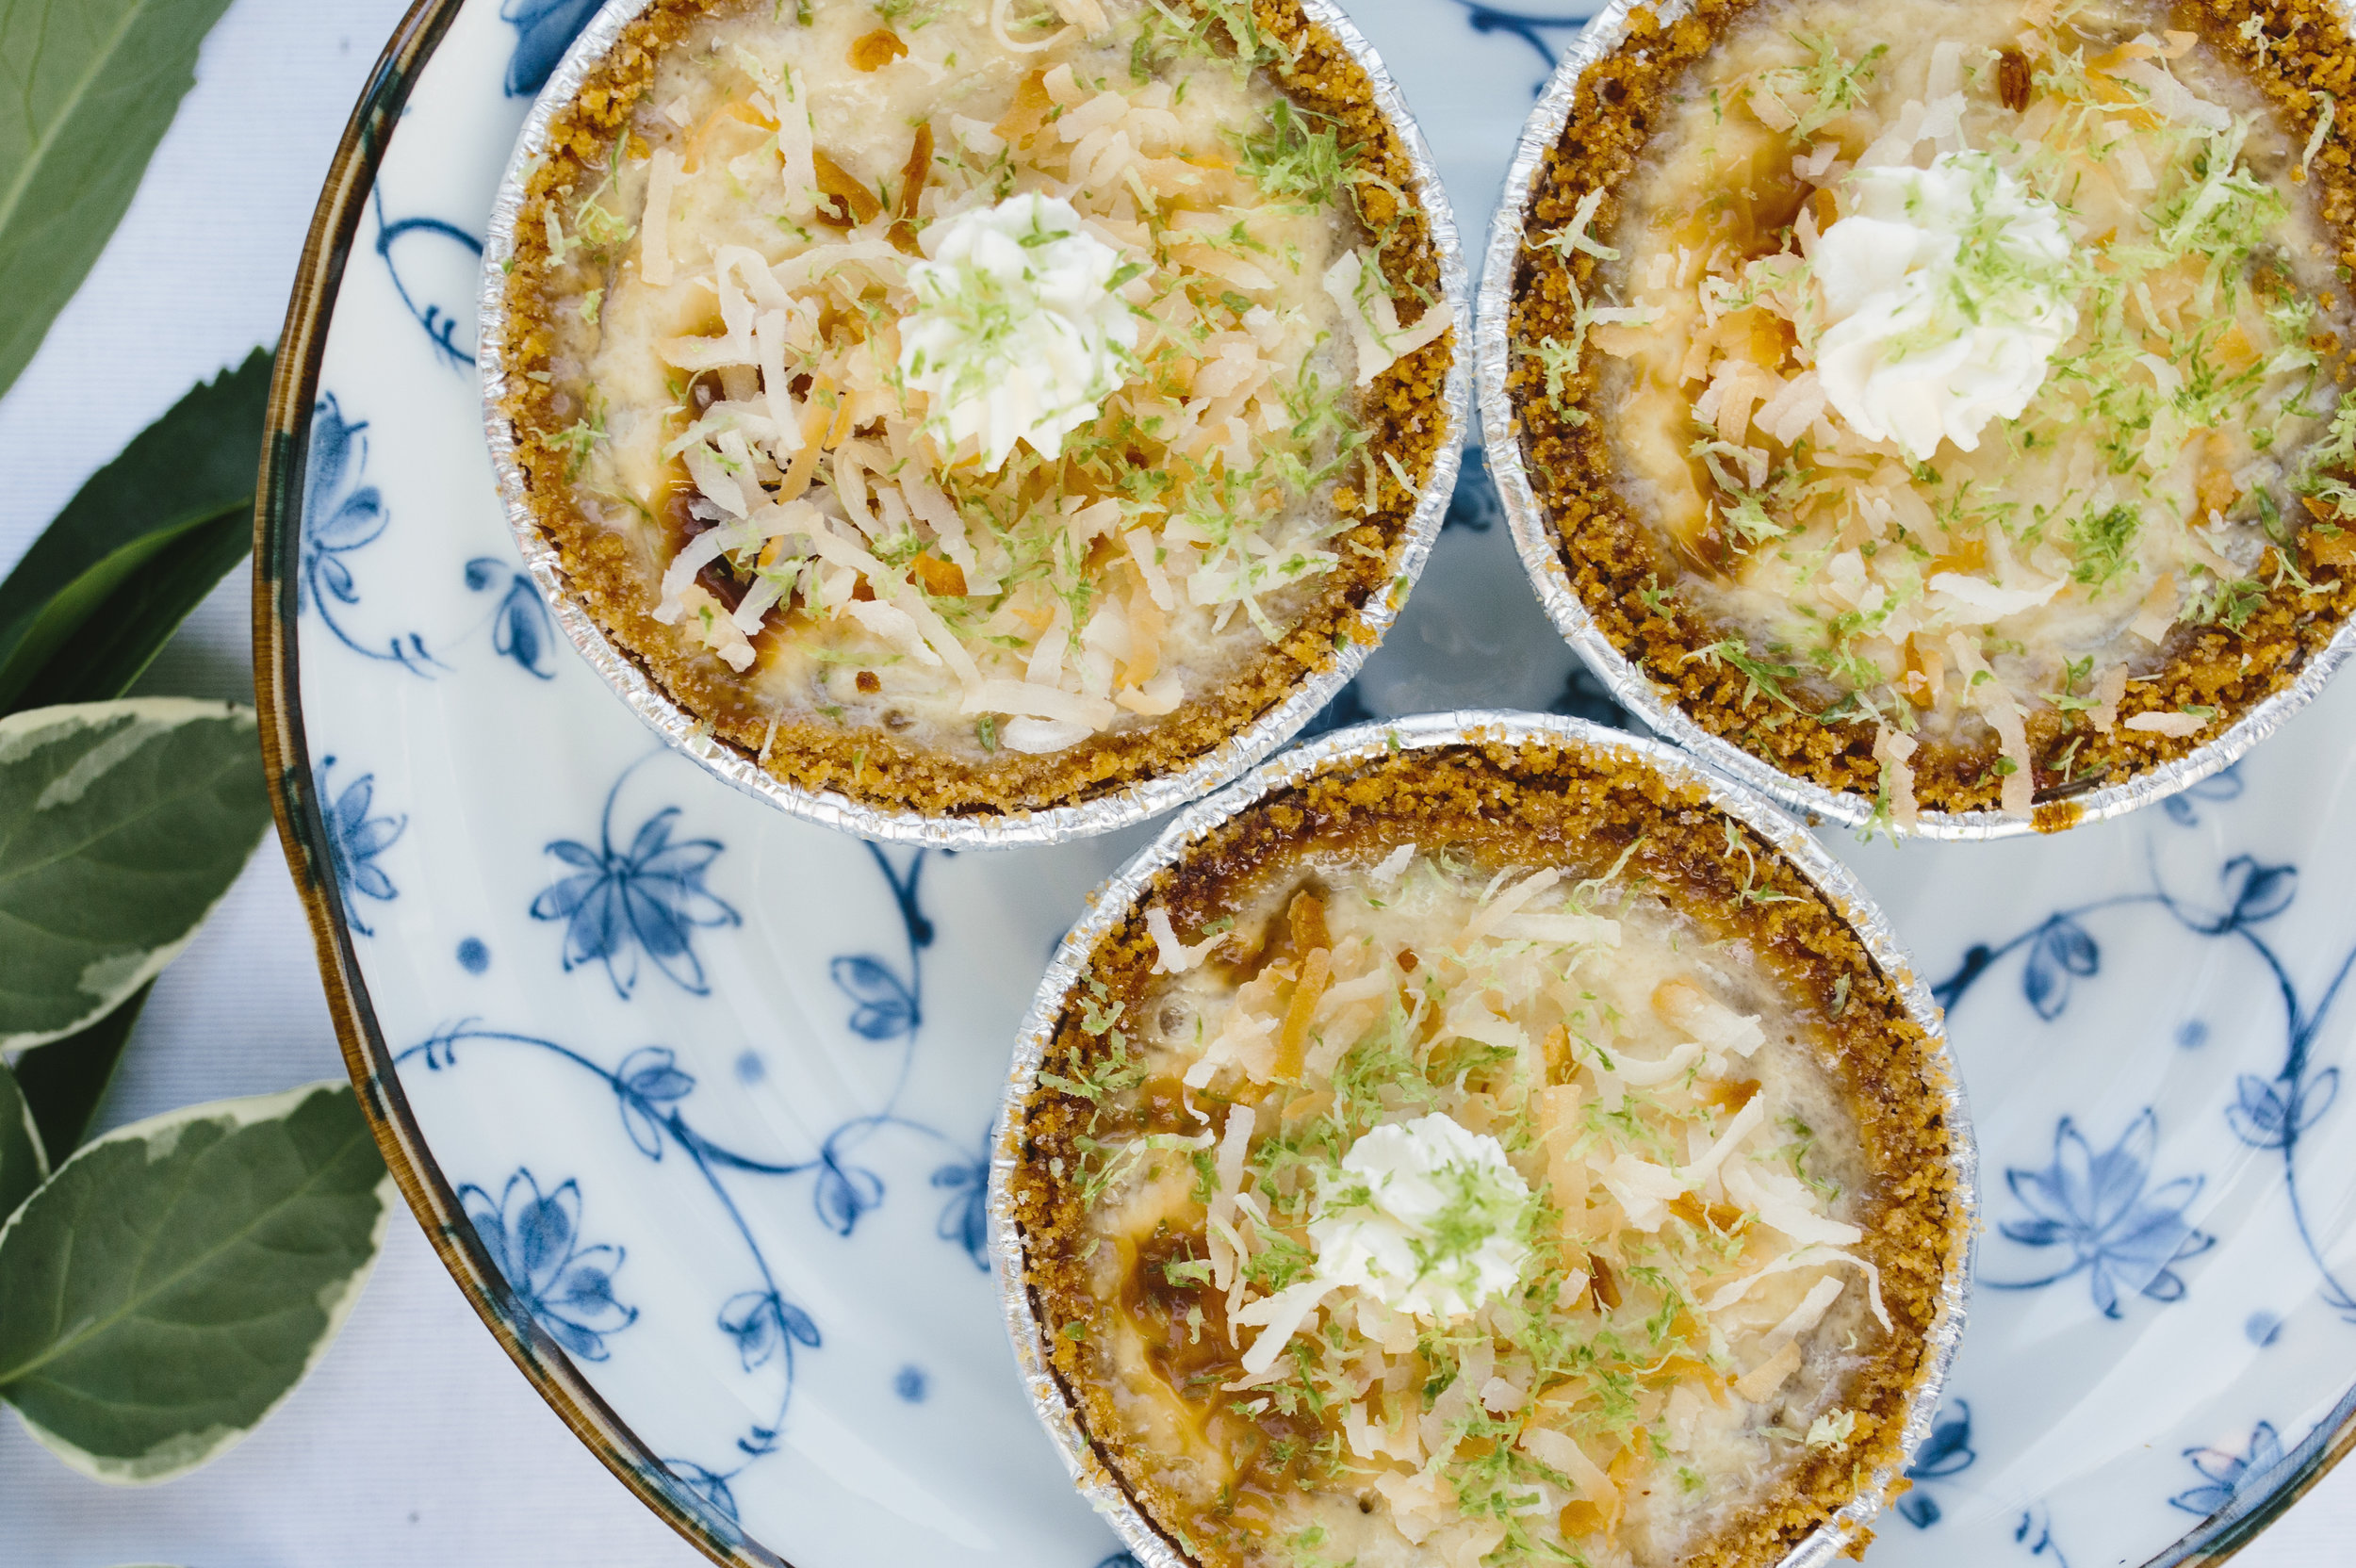 The Coconut Key Lime pies topped with handmade whipped cream, lime zest, and some toasted coconut shreds.